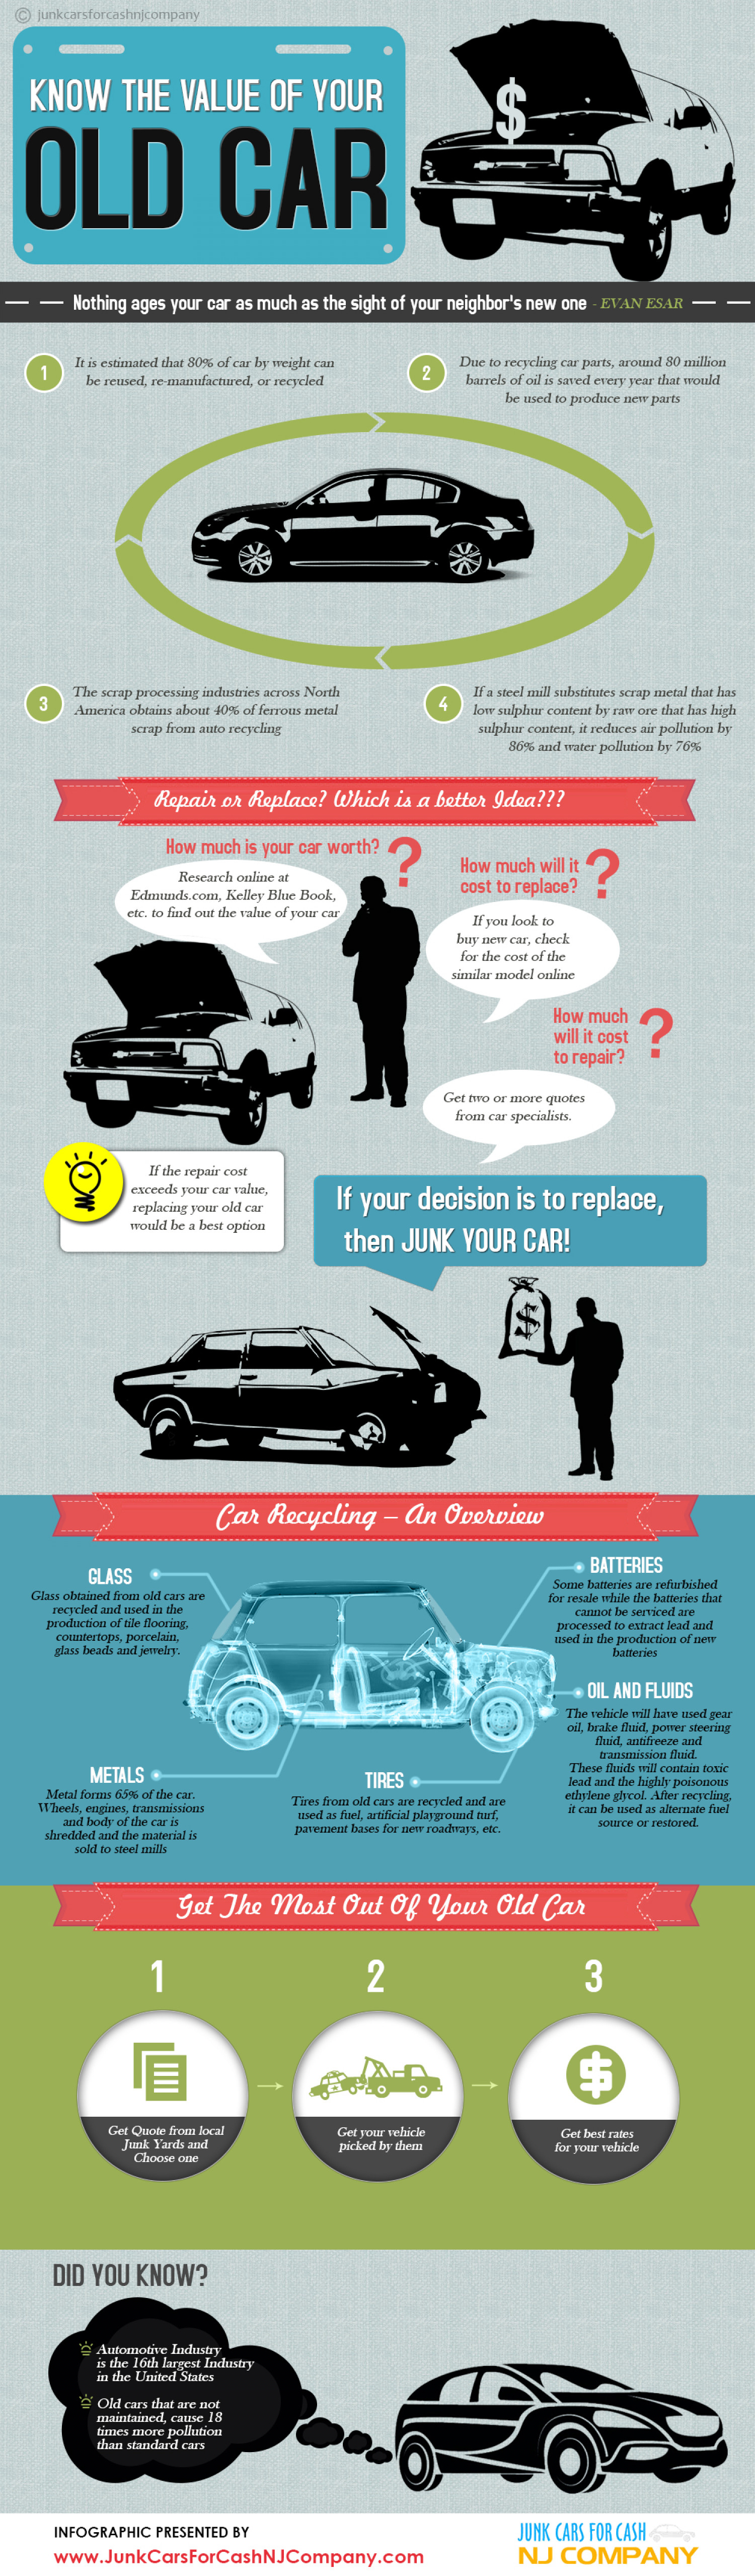 Know the value of your old car | Visual.ly